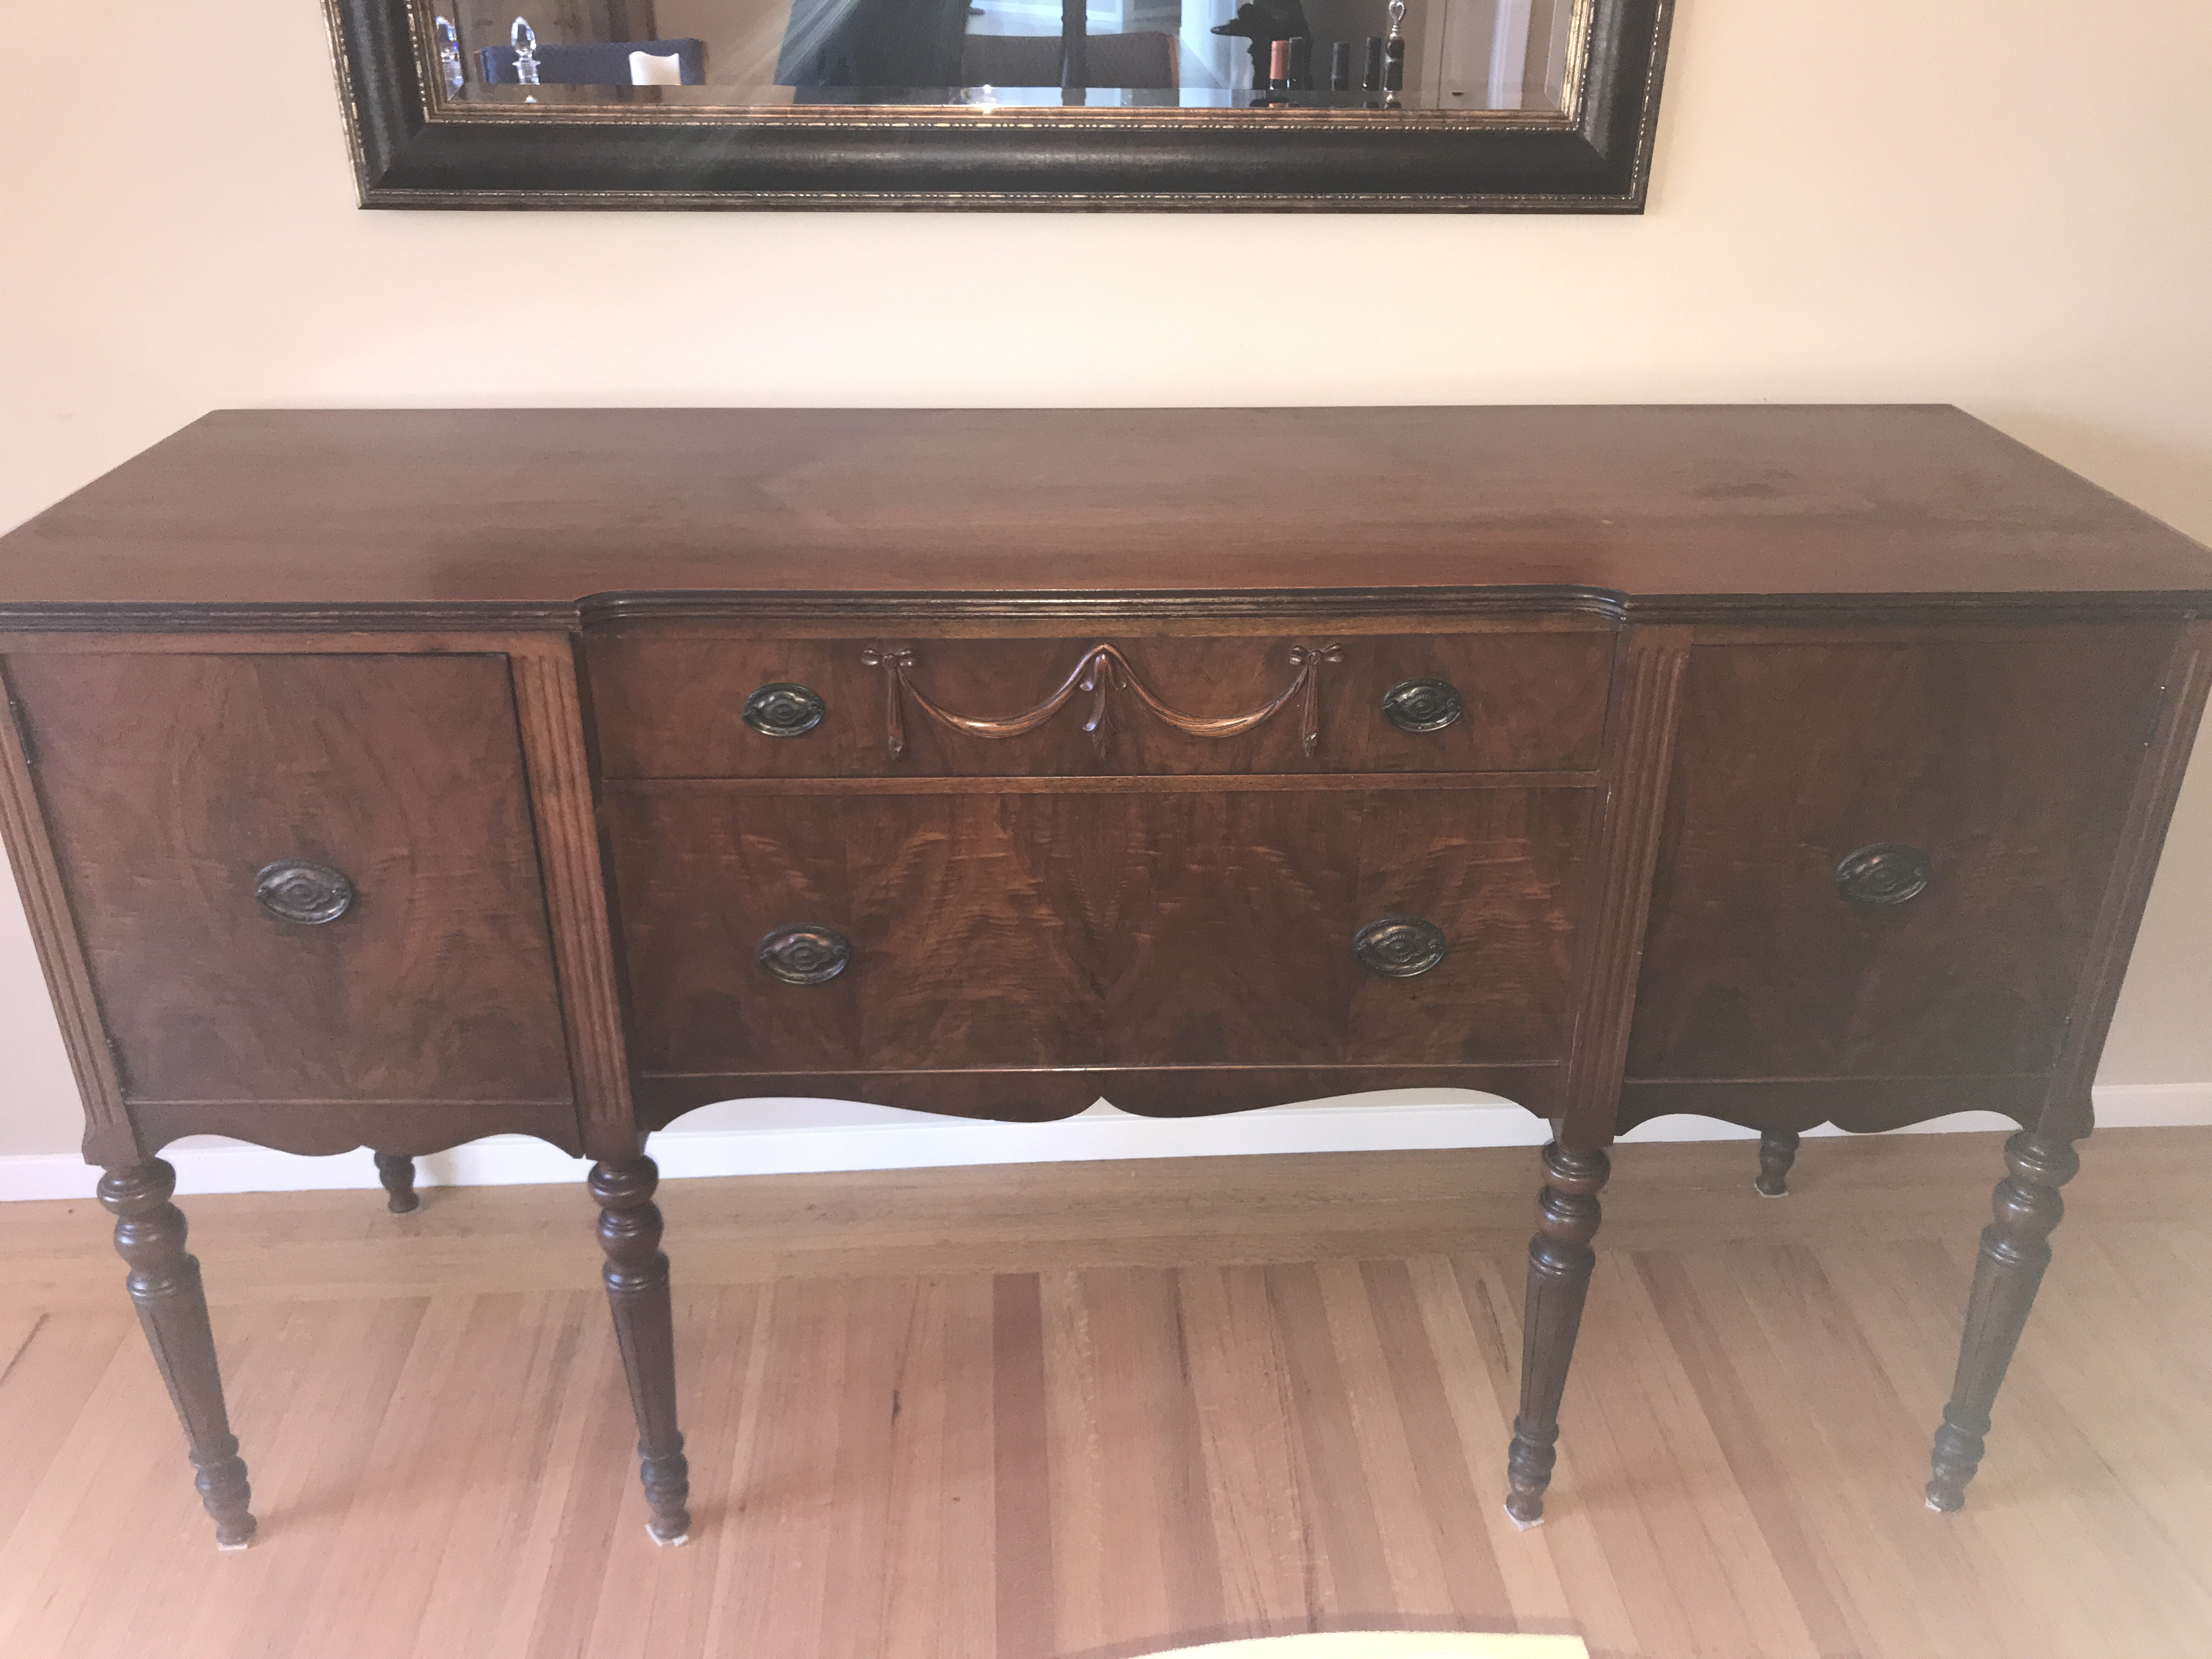 How To Value A Rockford Republic Furniture Company Buffet Antique